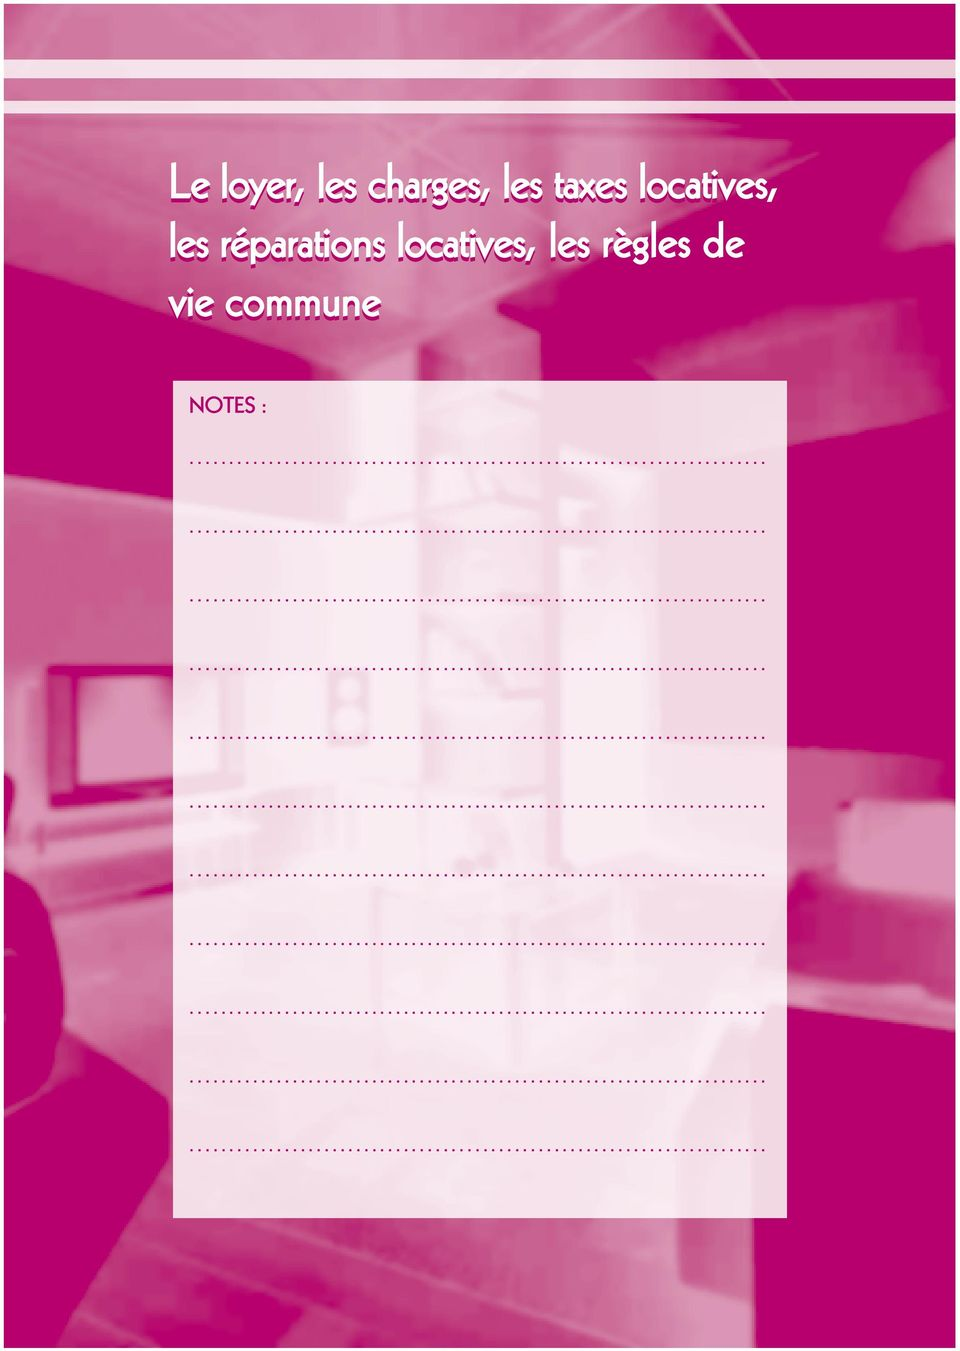 réparations locatives,